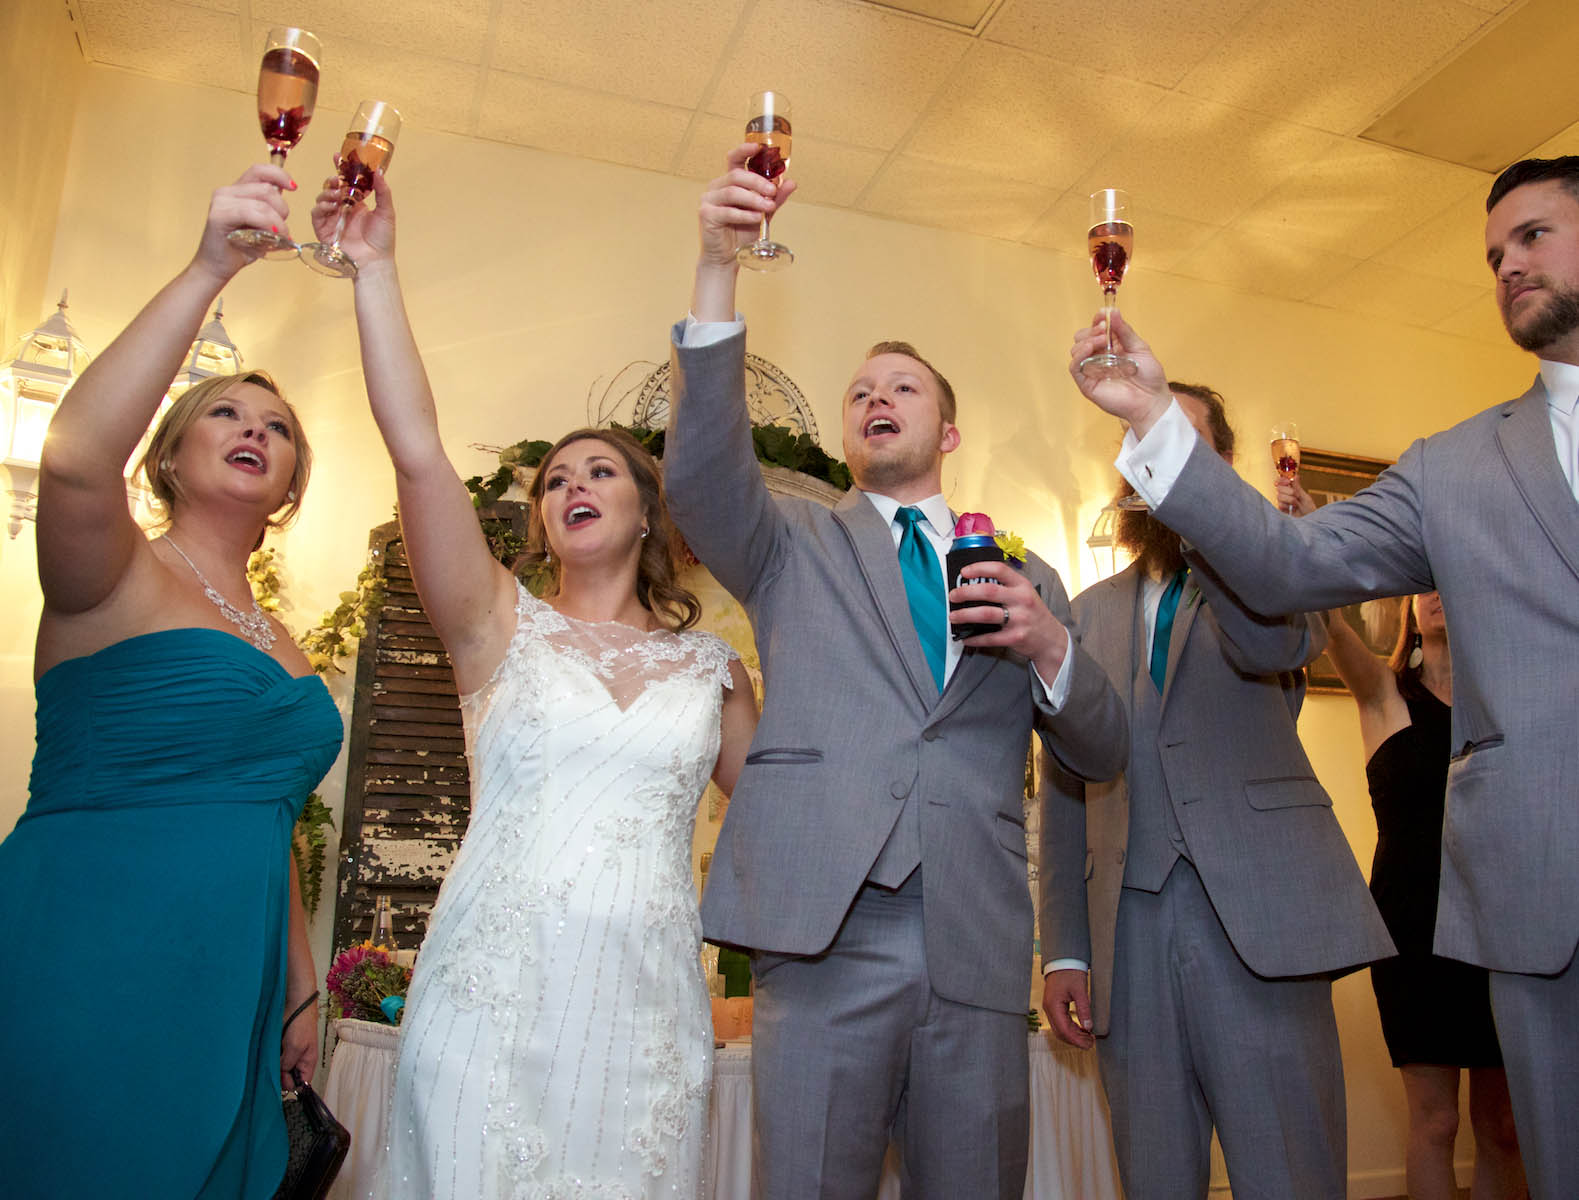 Toasting in the VIP room at Hamilton's 110 North East. Wedding pictures by Tiffany & Steve of Warmowski Photography.